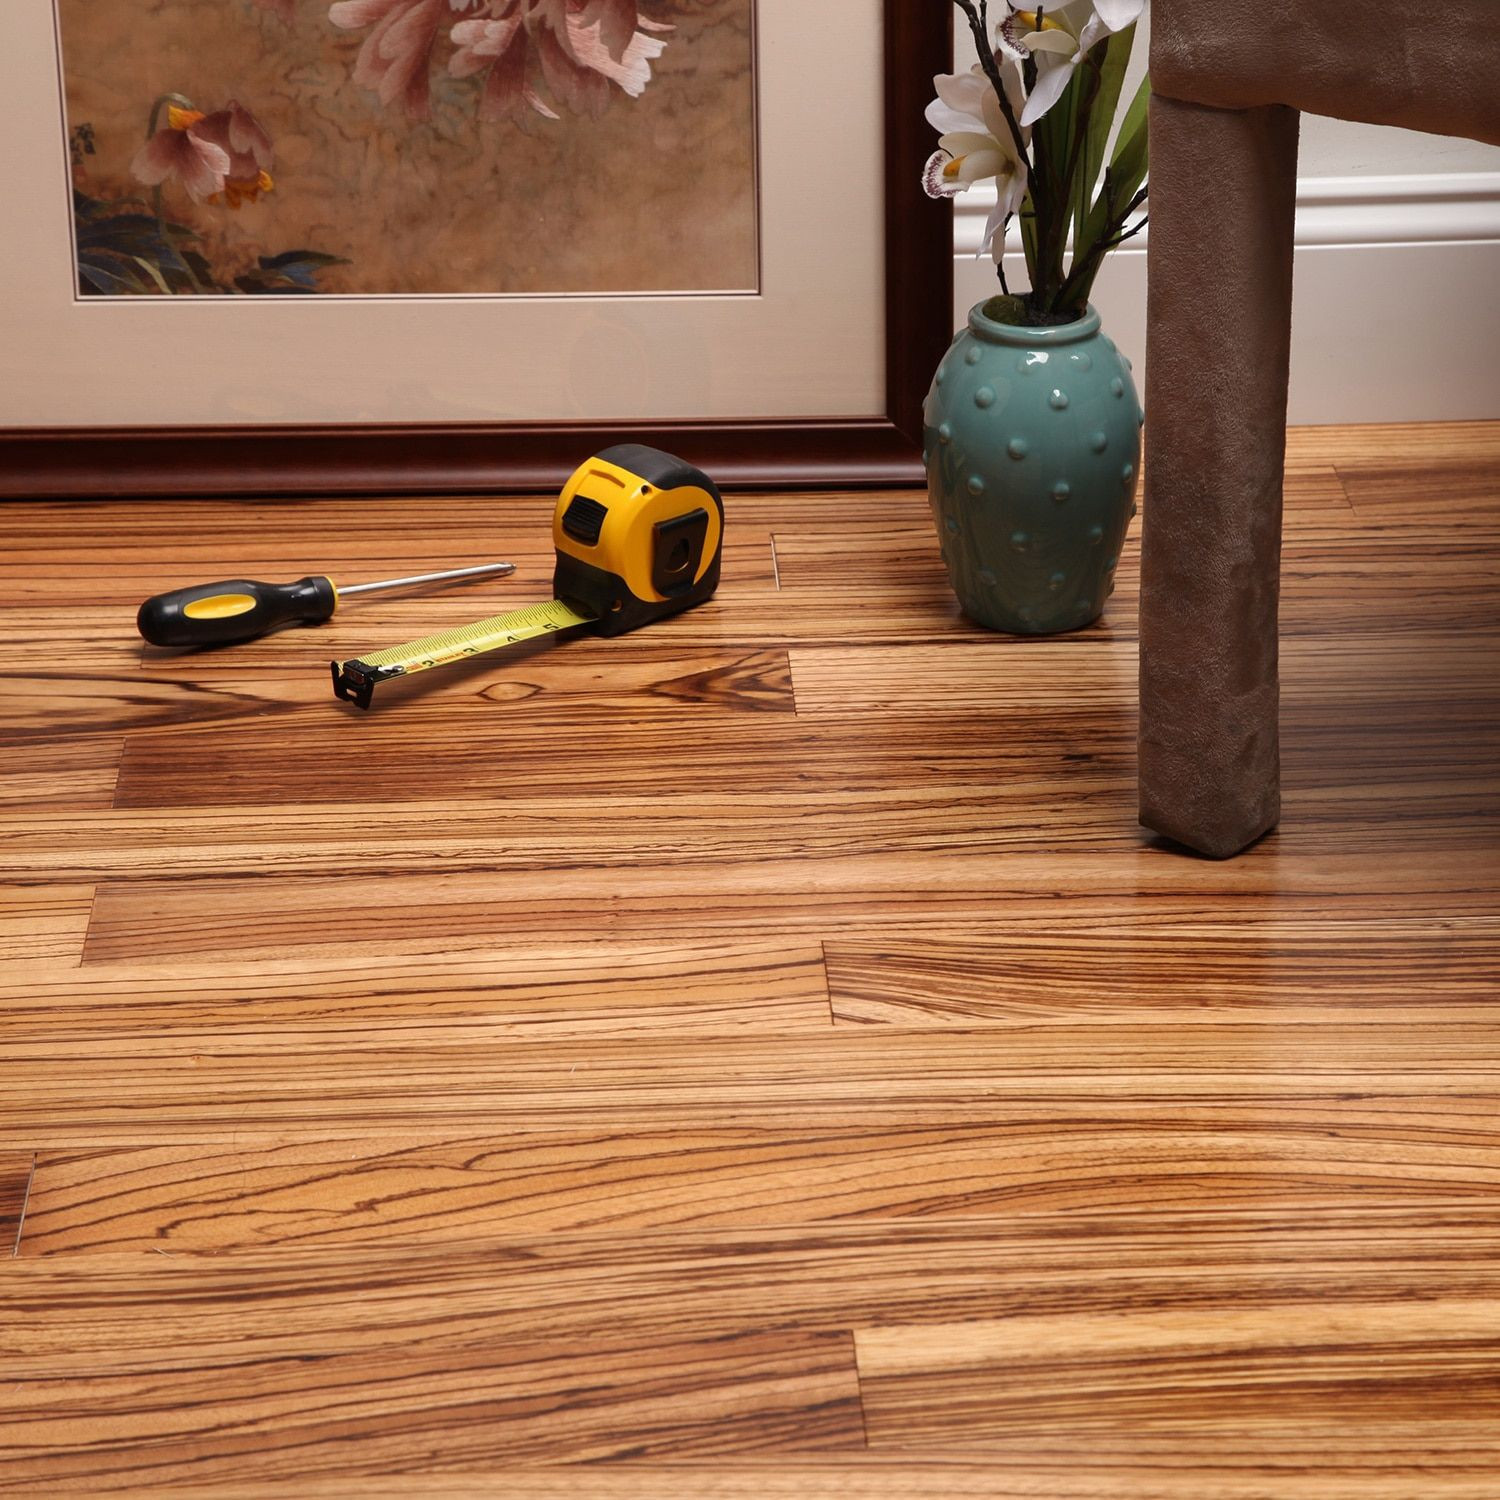 hardwood flooring imports of prefinished wood flooring floor plan ideas regarding hardwood flooring add the classic look and feel of hardwood flooring to your home with bamboo